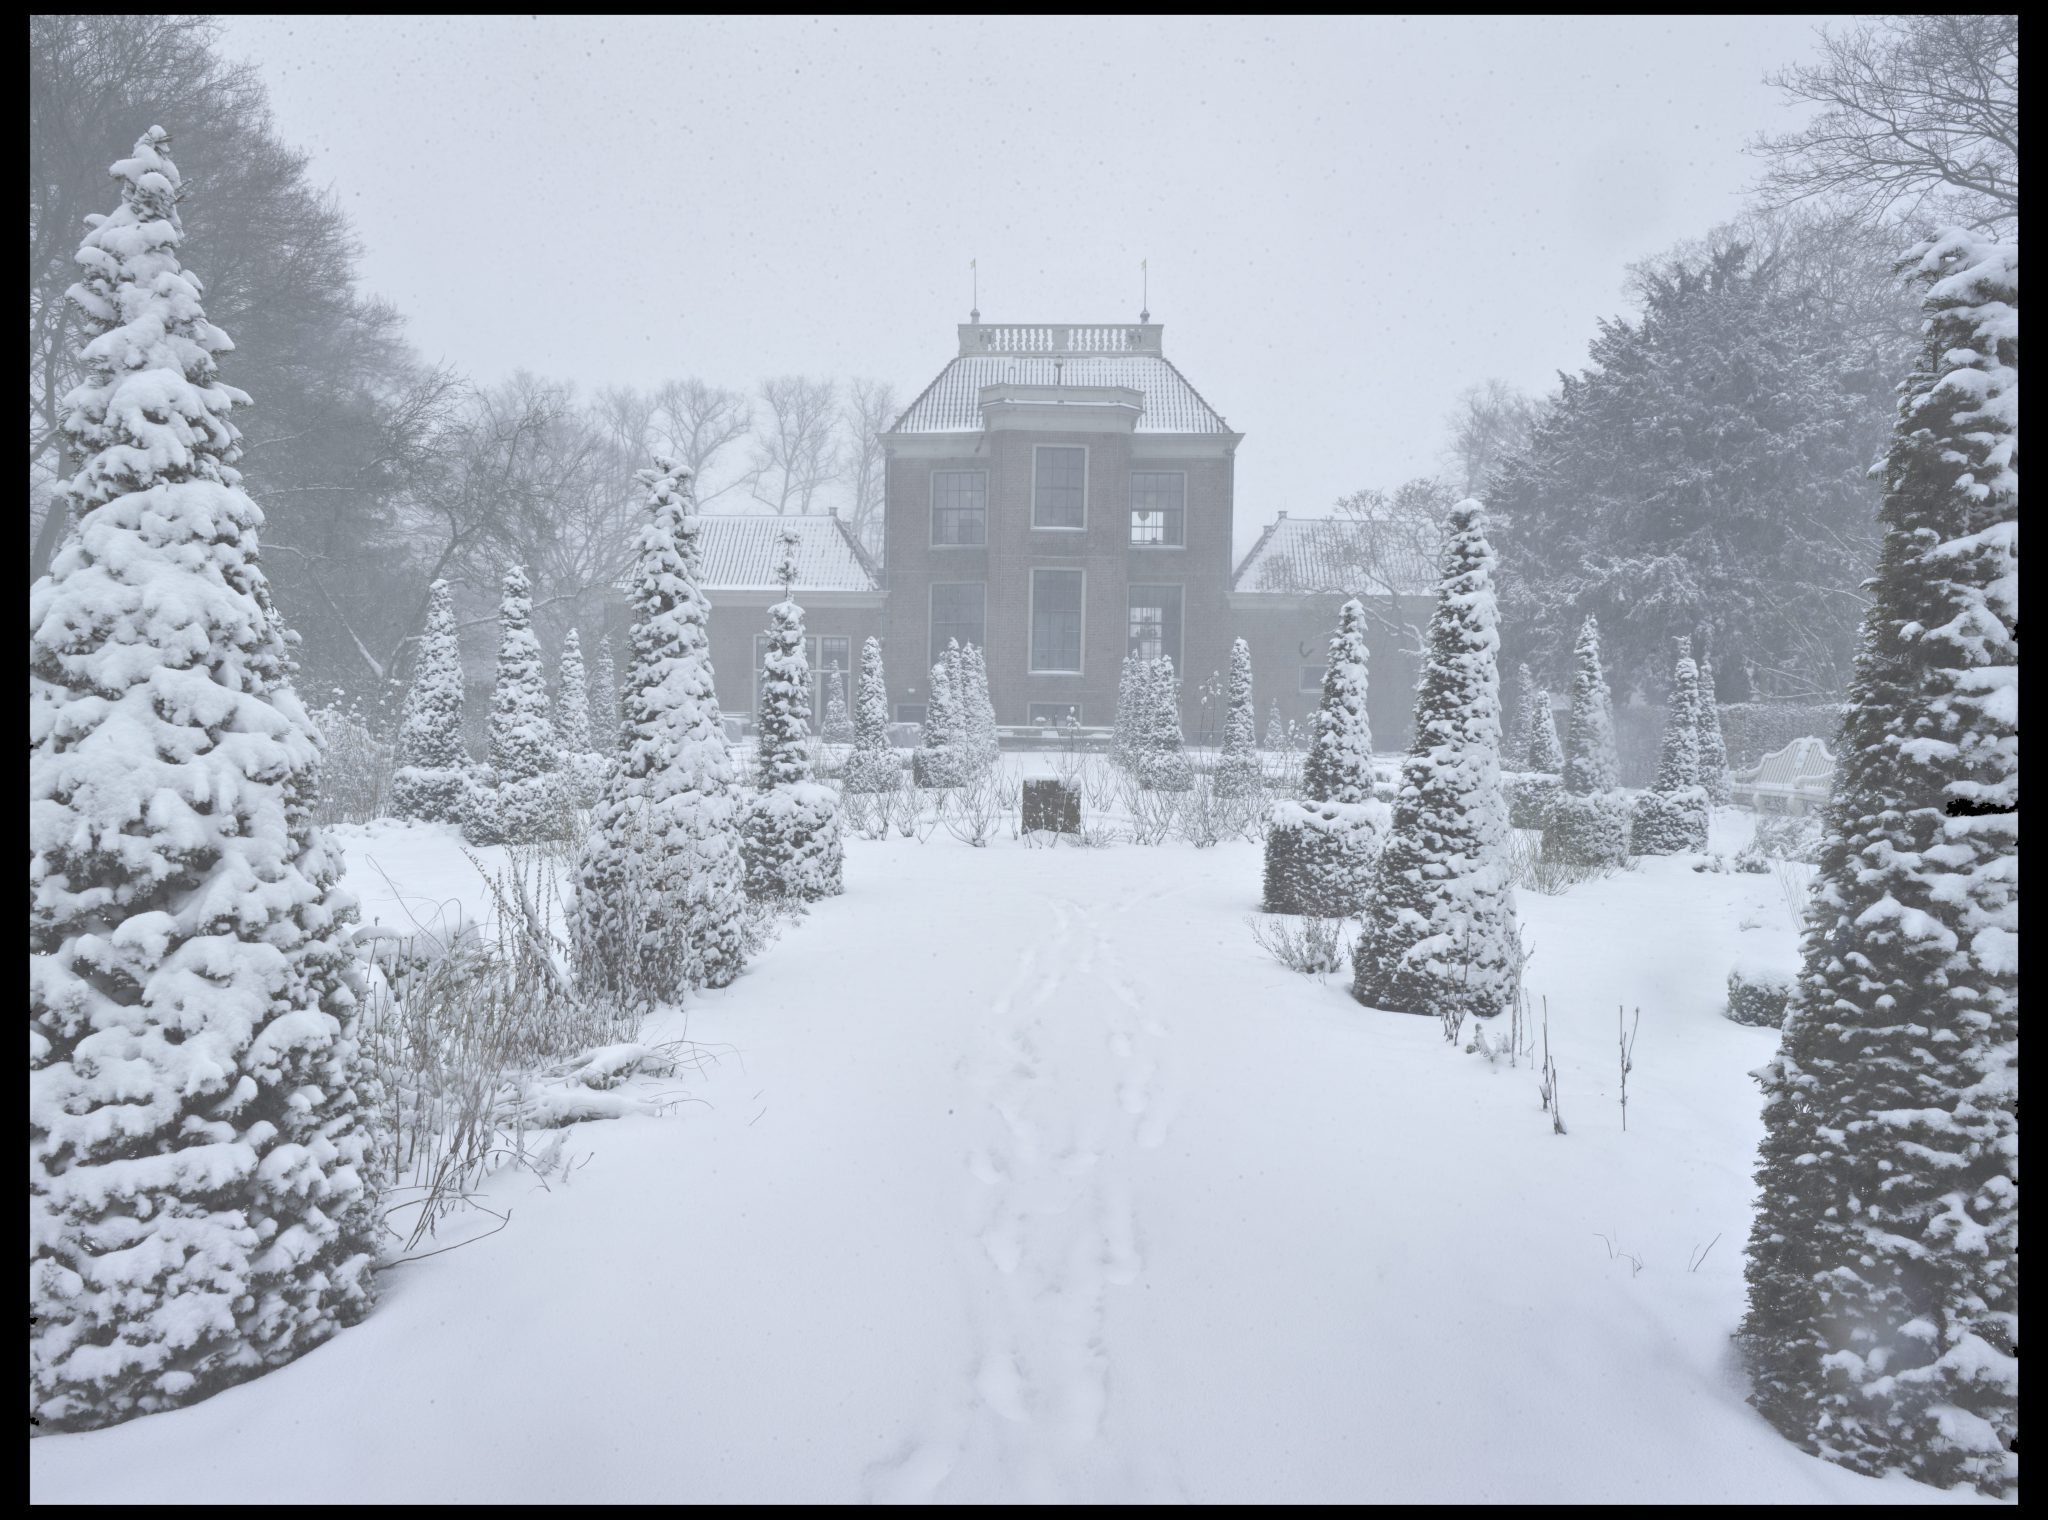 Huize Frankendael in de winter